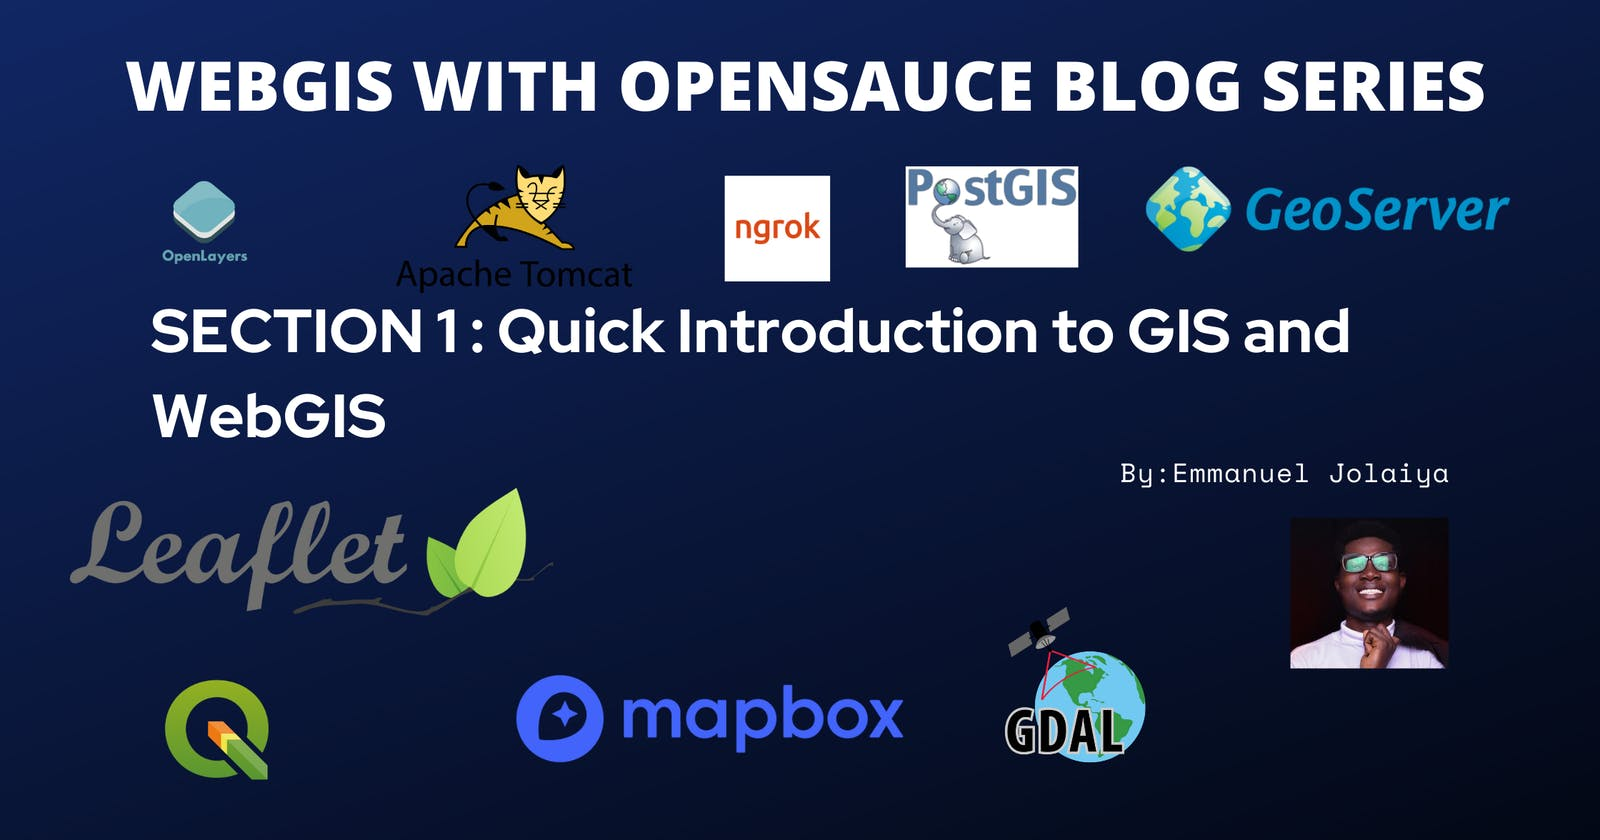 SECTION 1: Quick Introduction To GIS And WebGIS